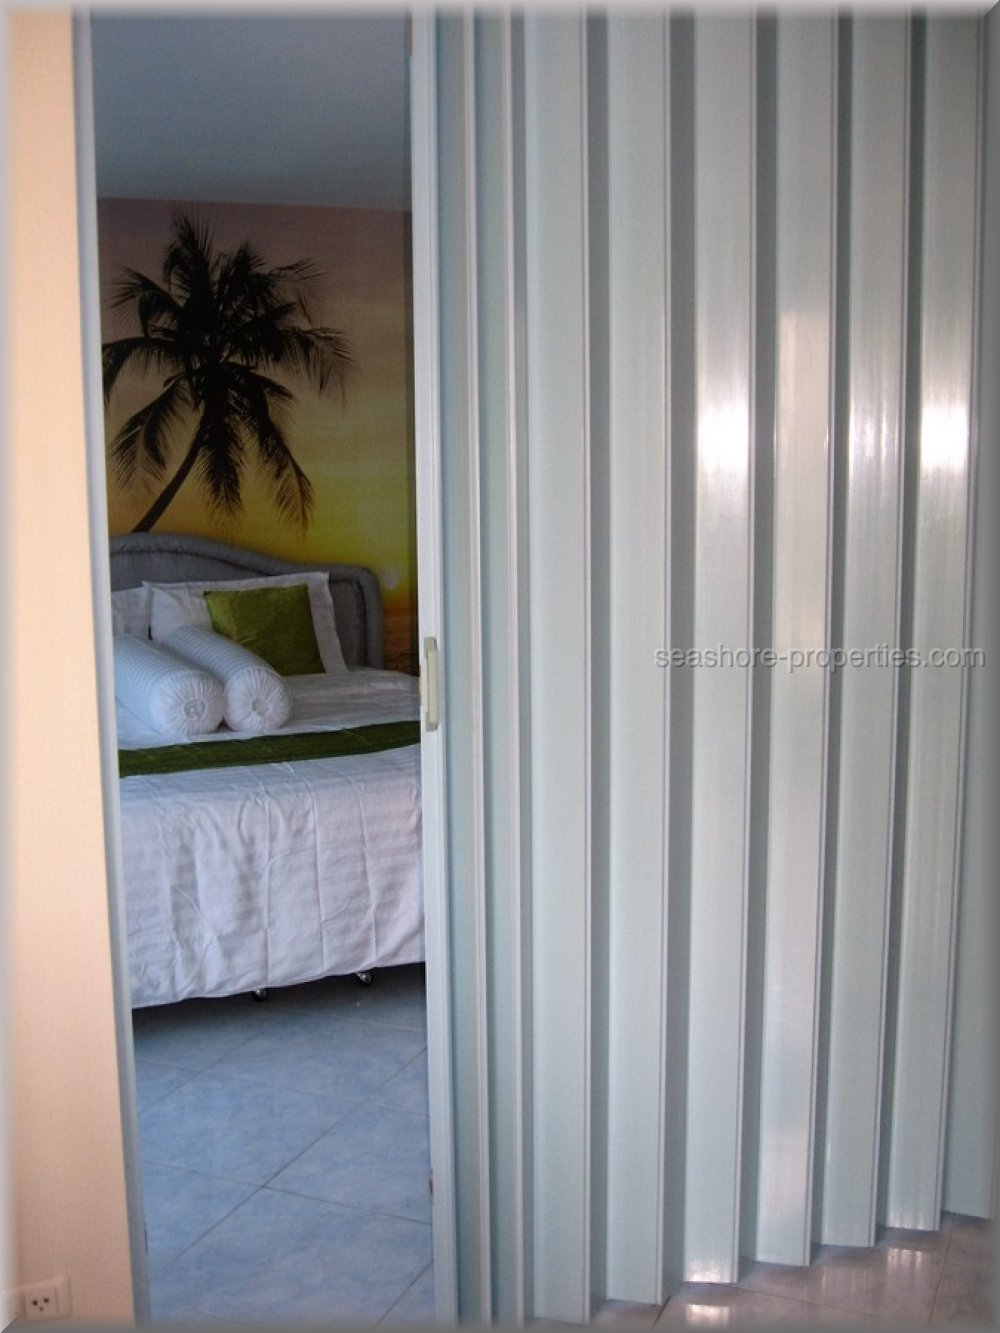 pic-5-Seashore Properties (Thailand) Co. Ltd. view talay condo 1 b   to rent in Jomtien Pattaya